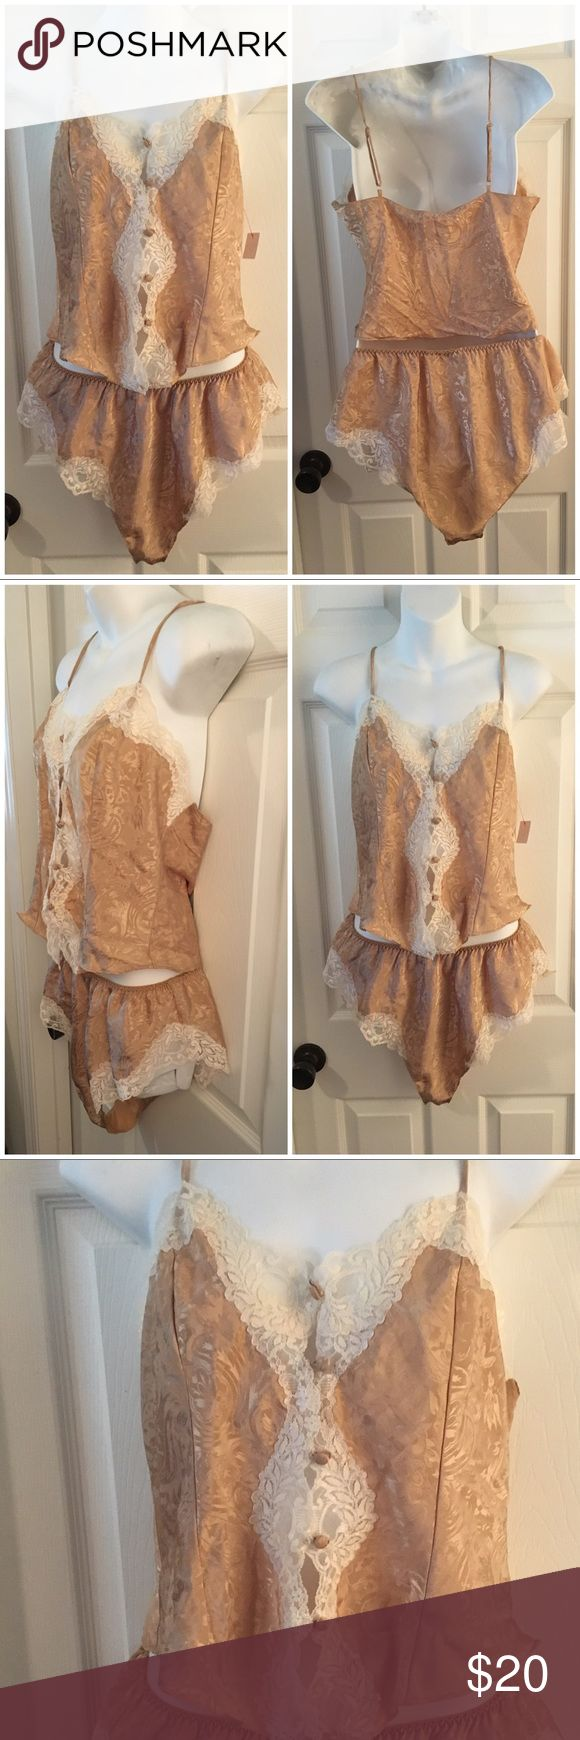 Delicates Gold Cami & Tap Pants Satin PJ Set Sz M Delicates brand Satin pj set consisting of a button-up Cami and high-waisted French cut tap pants. Gold with off-white Lace trim. Size Medium. Excellent condition with no flaws to note. Delicates Intimates & Sleepwear Pajamas